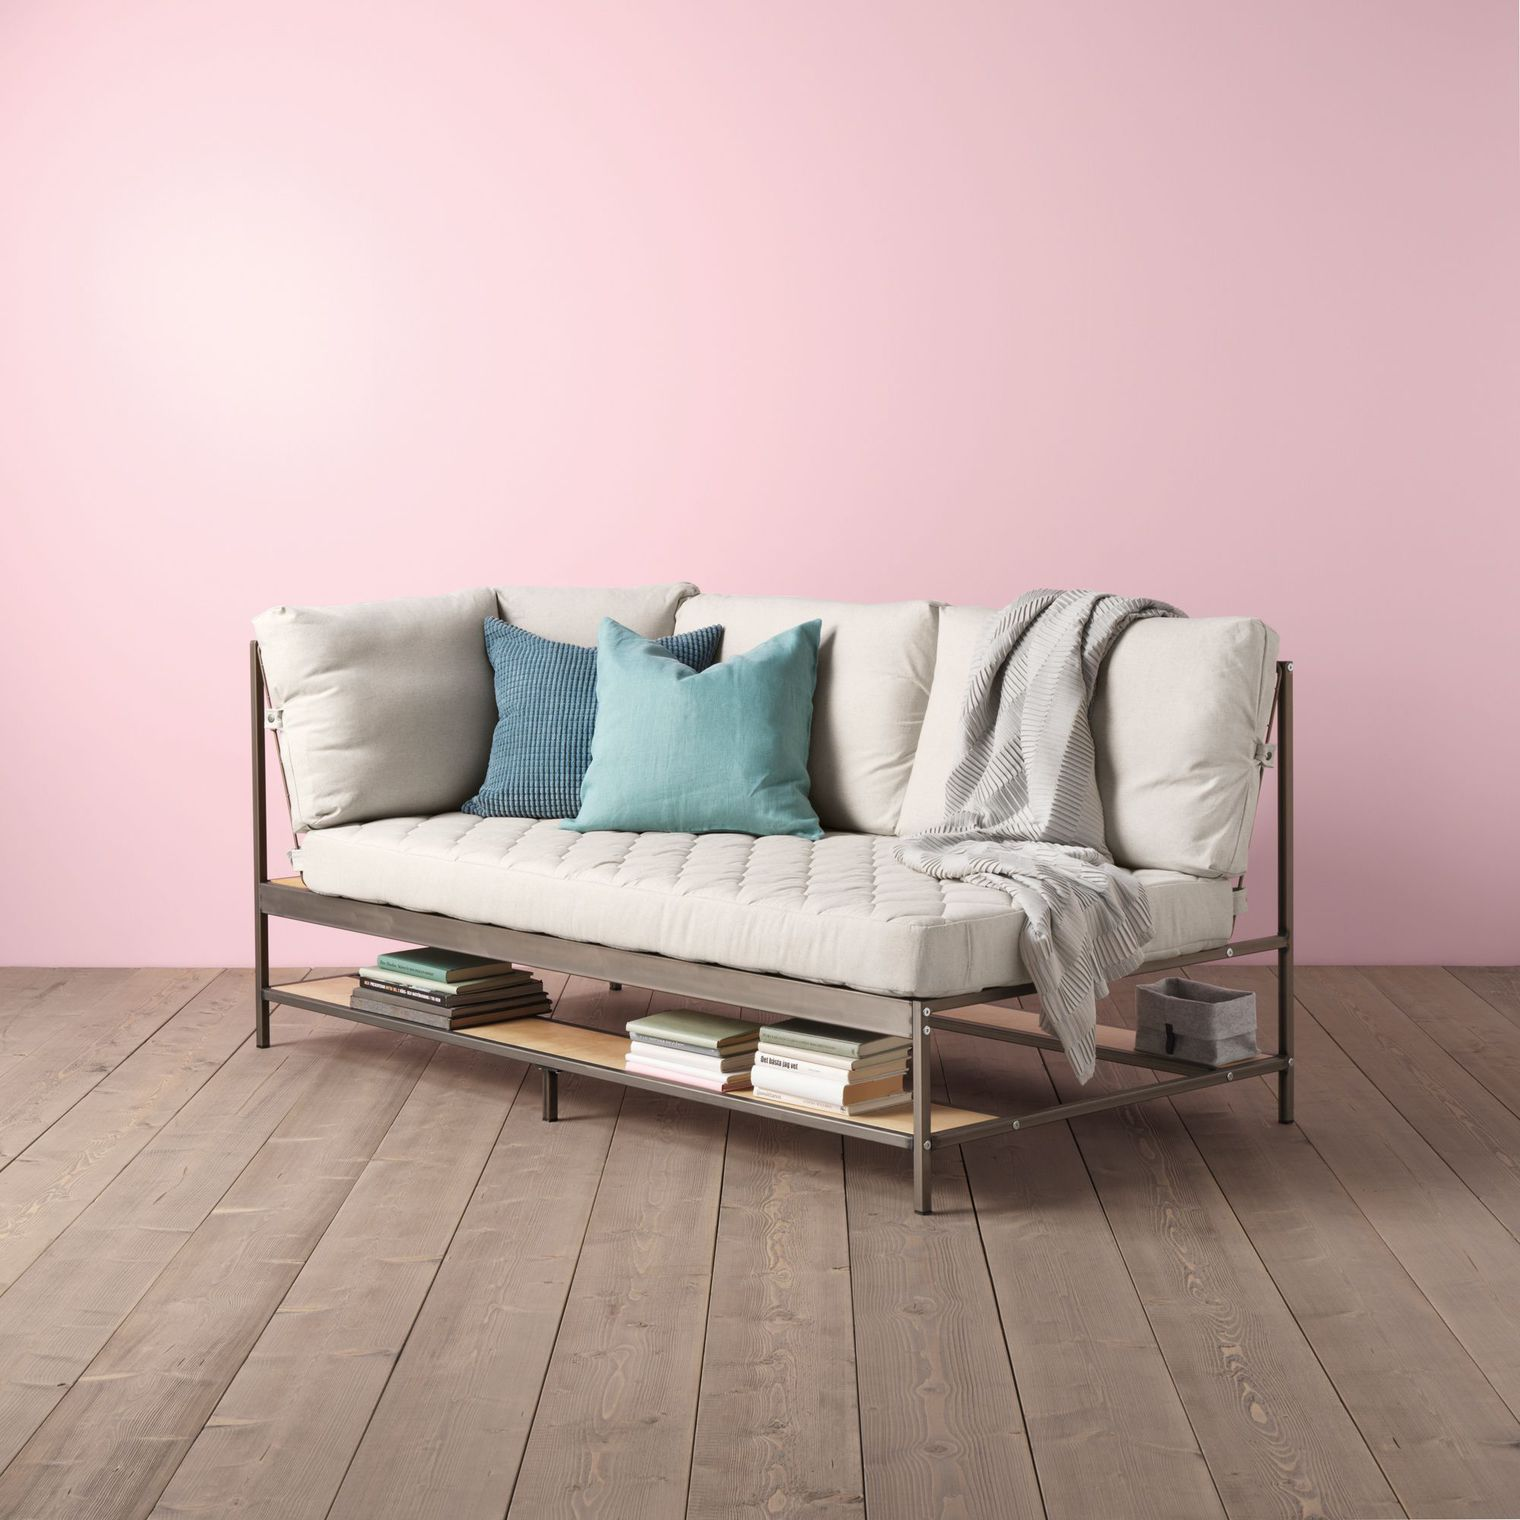 Sofa With Shelf Underneath Ekebol By Ikea Via Sweet Home On  # Ikea Paris Meuble